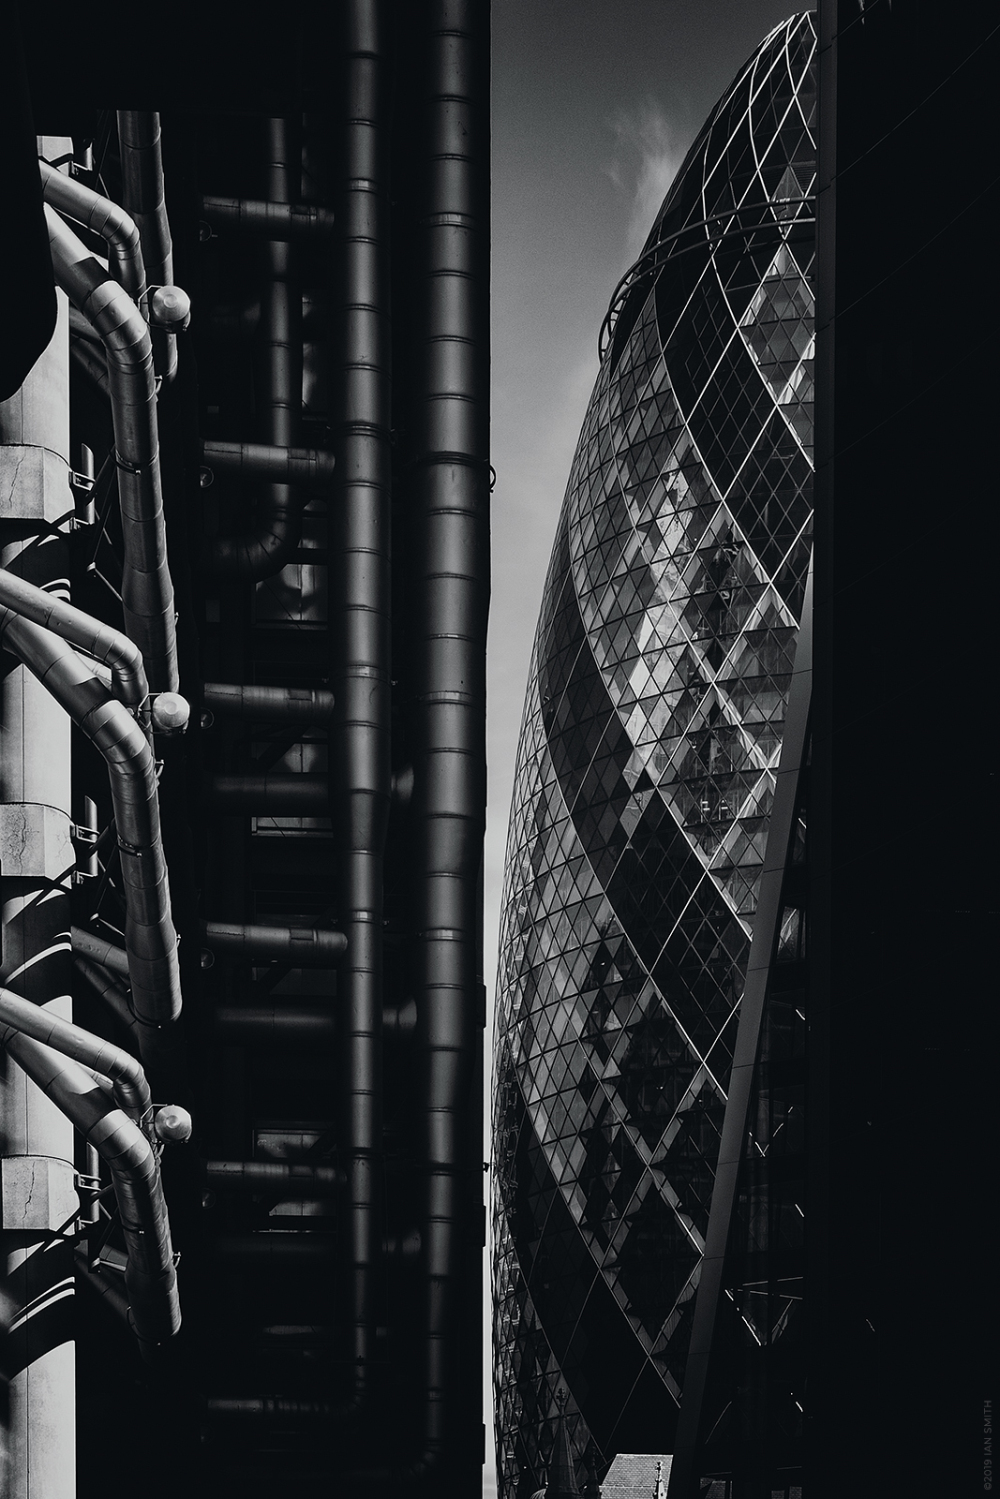 Lloyds Building and The Gherkin London